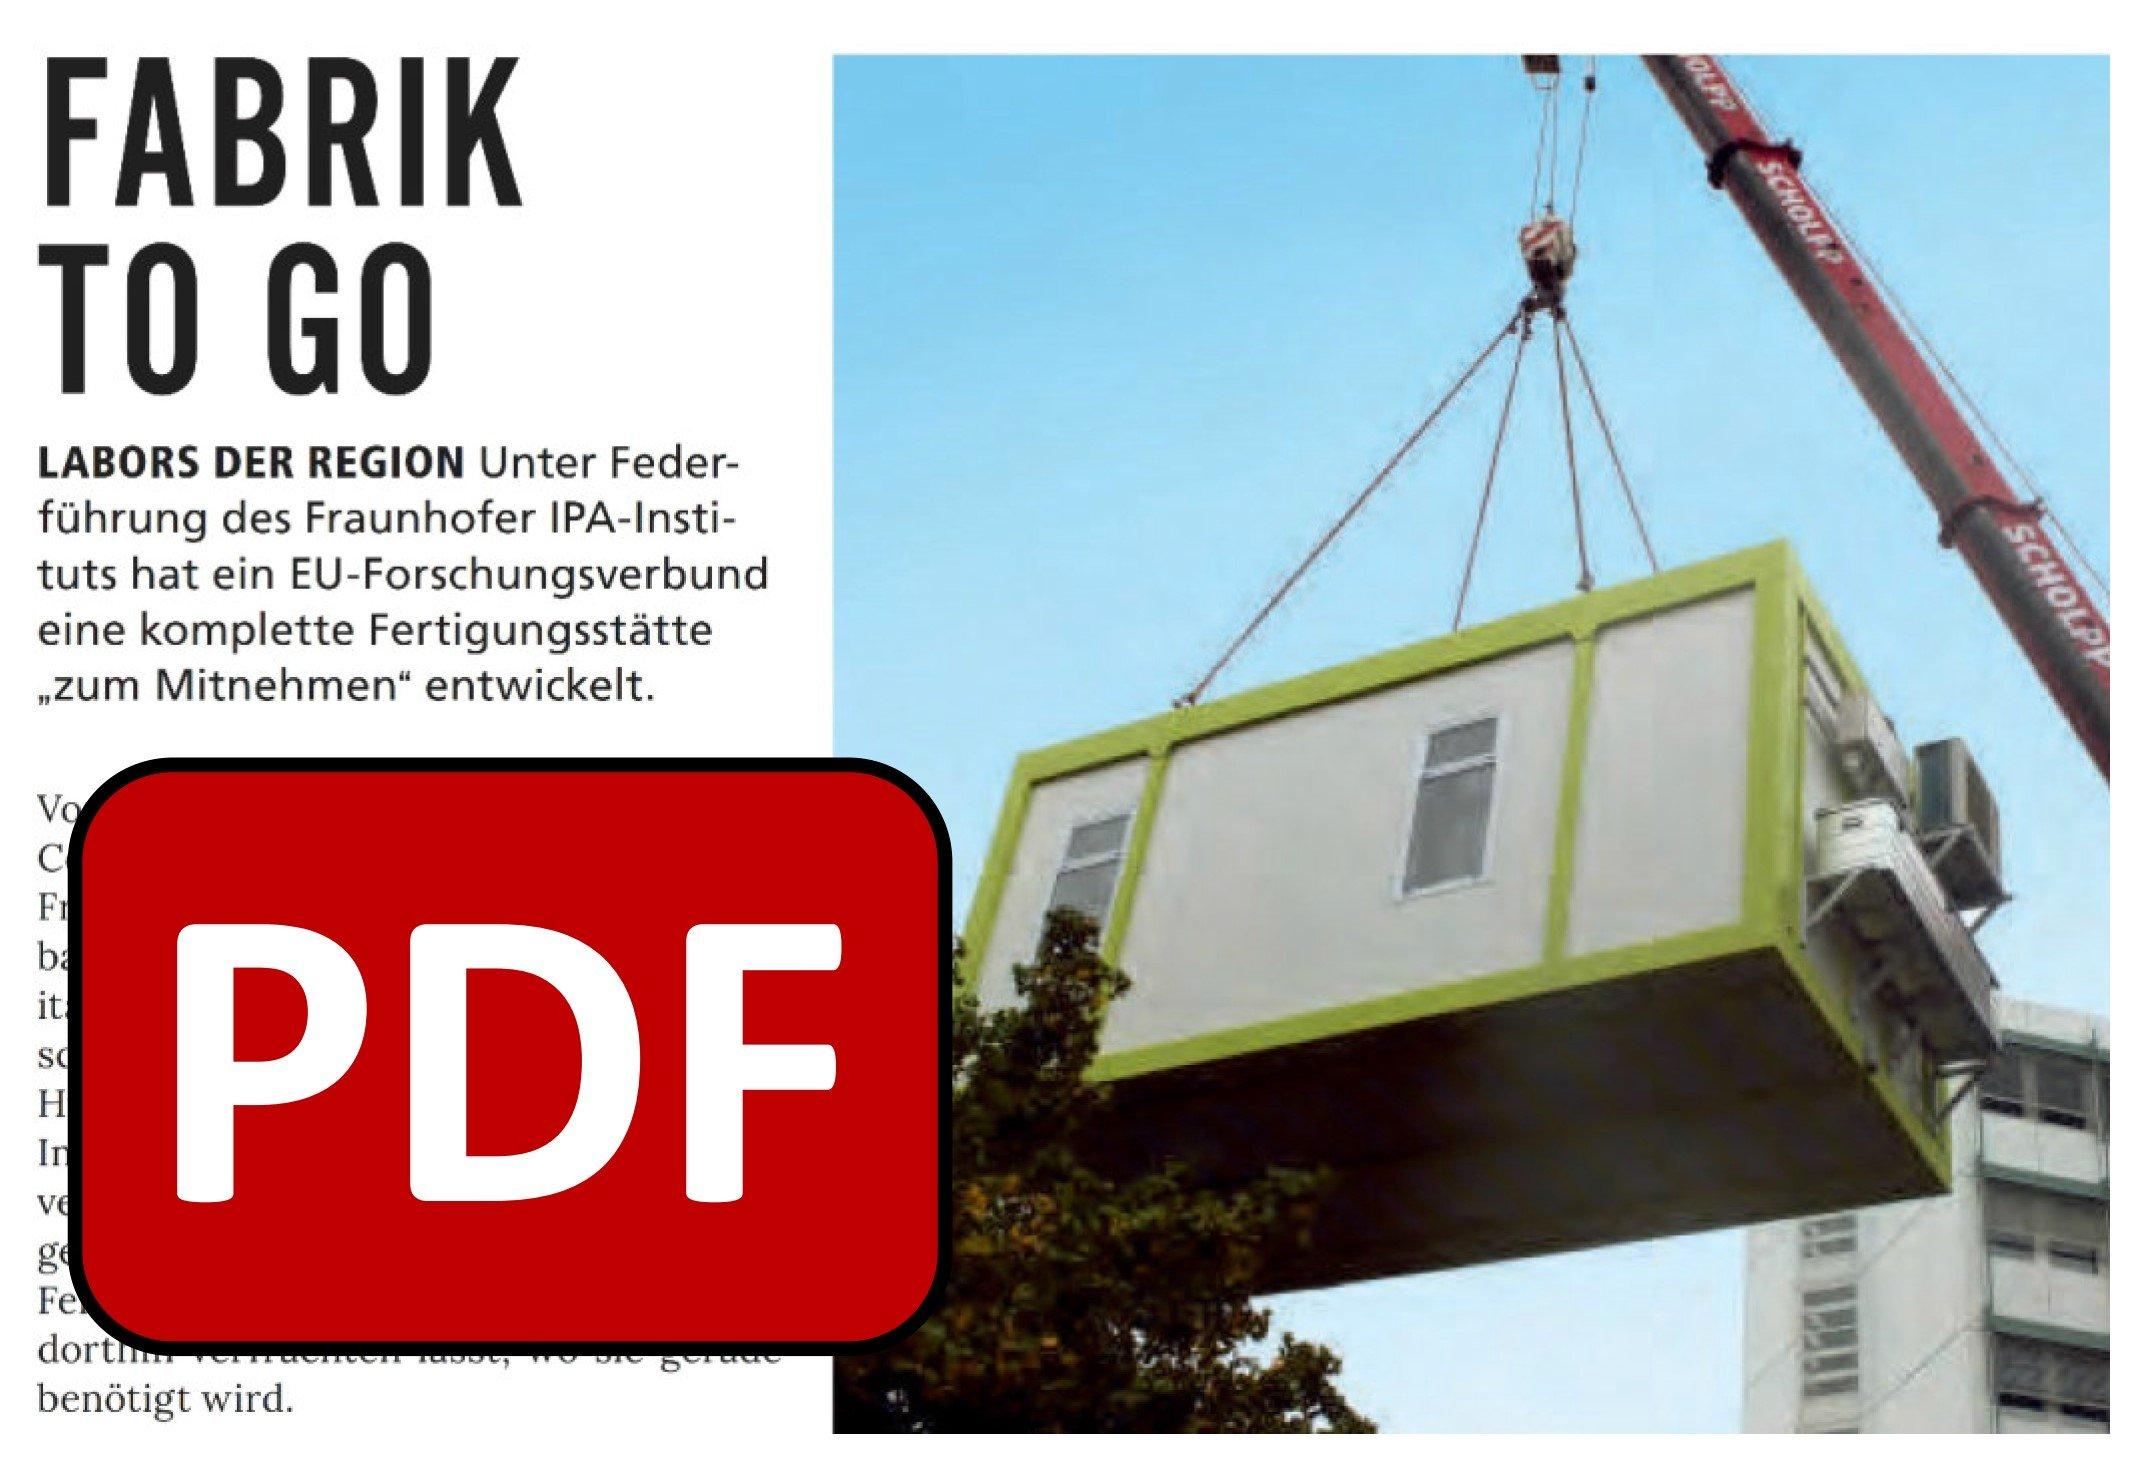 ABS intec - Technikcontainer IHK Fabrik to go PDF 1 - Planung & Engineering